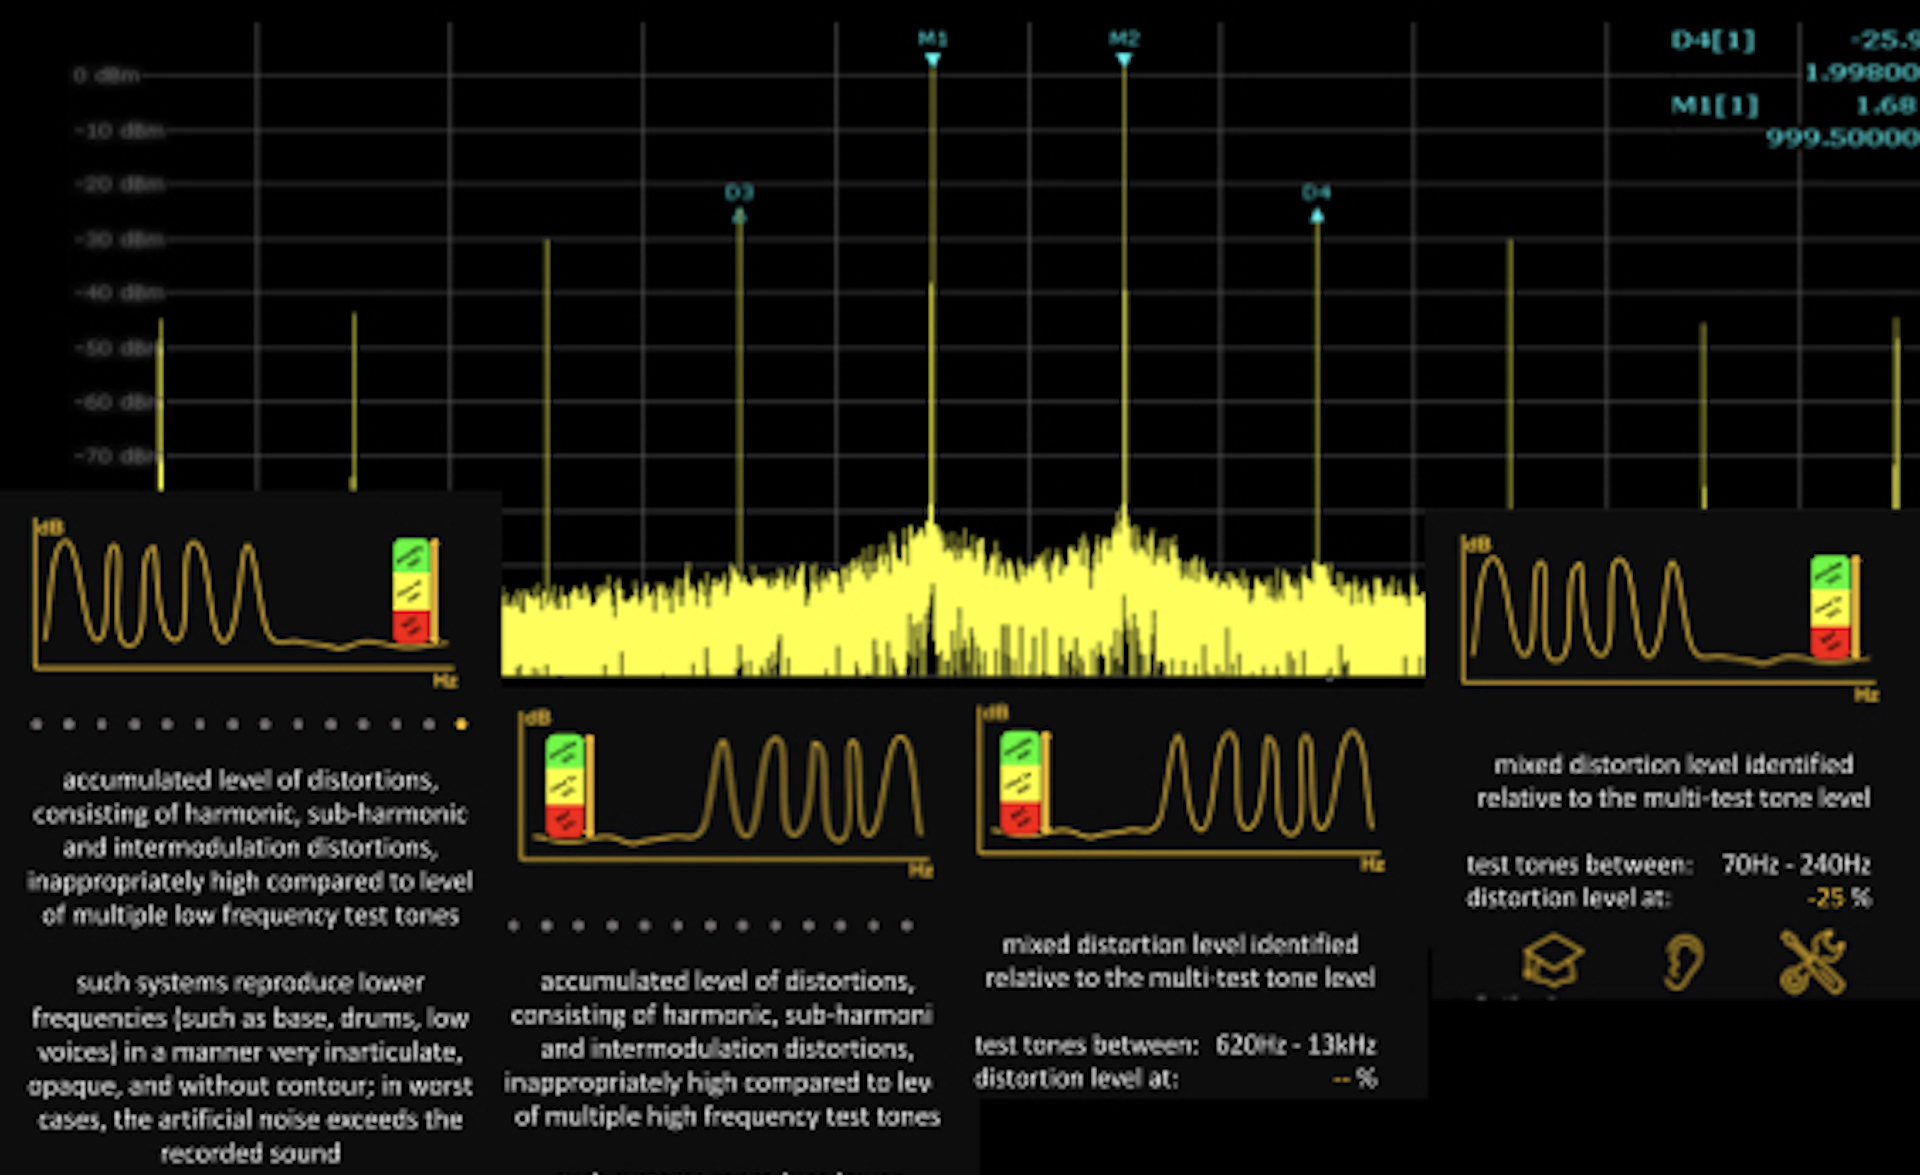 Flaws in audio systems loudness at intermodulation